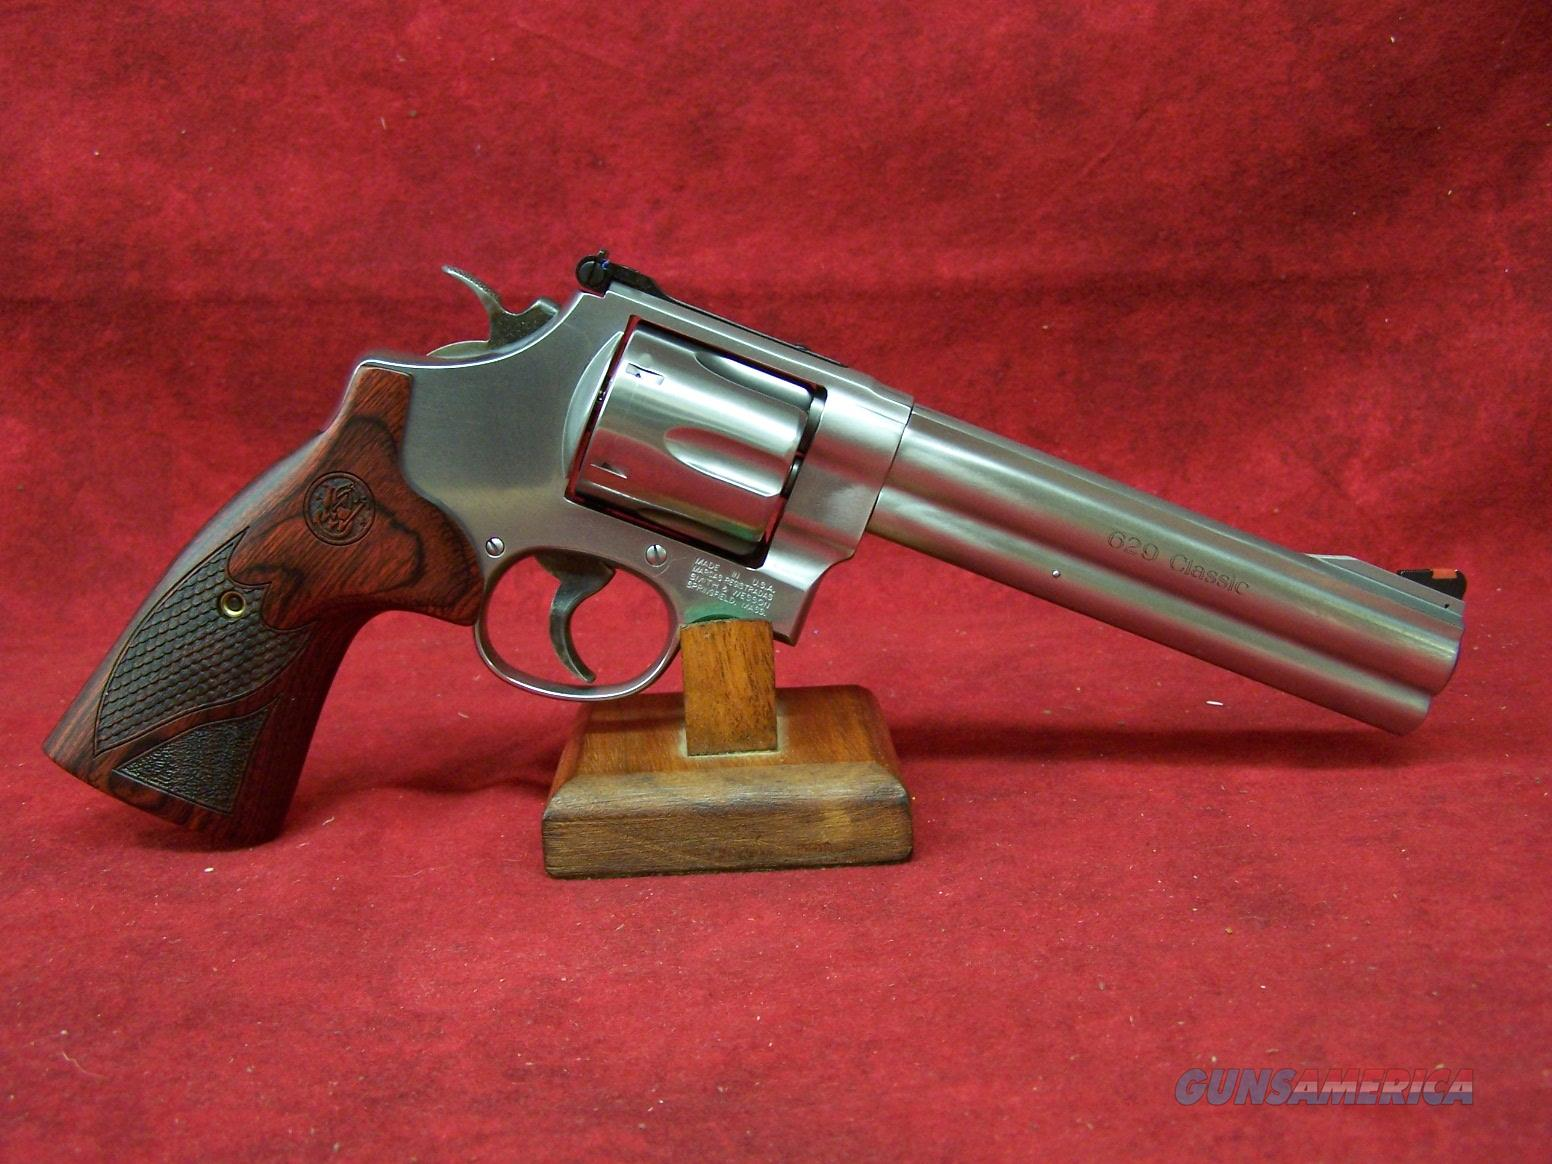 Smith & Wesson Model 629 Deluxe .44 Magnum 6.5 Inch Barrel (150714)  Guns > Pistols > Smith & Wesson Revolvers > Model 629